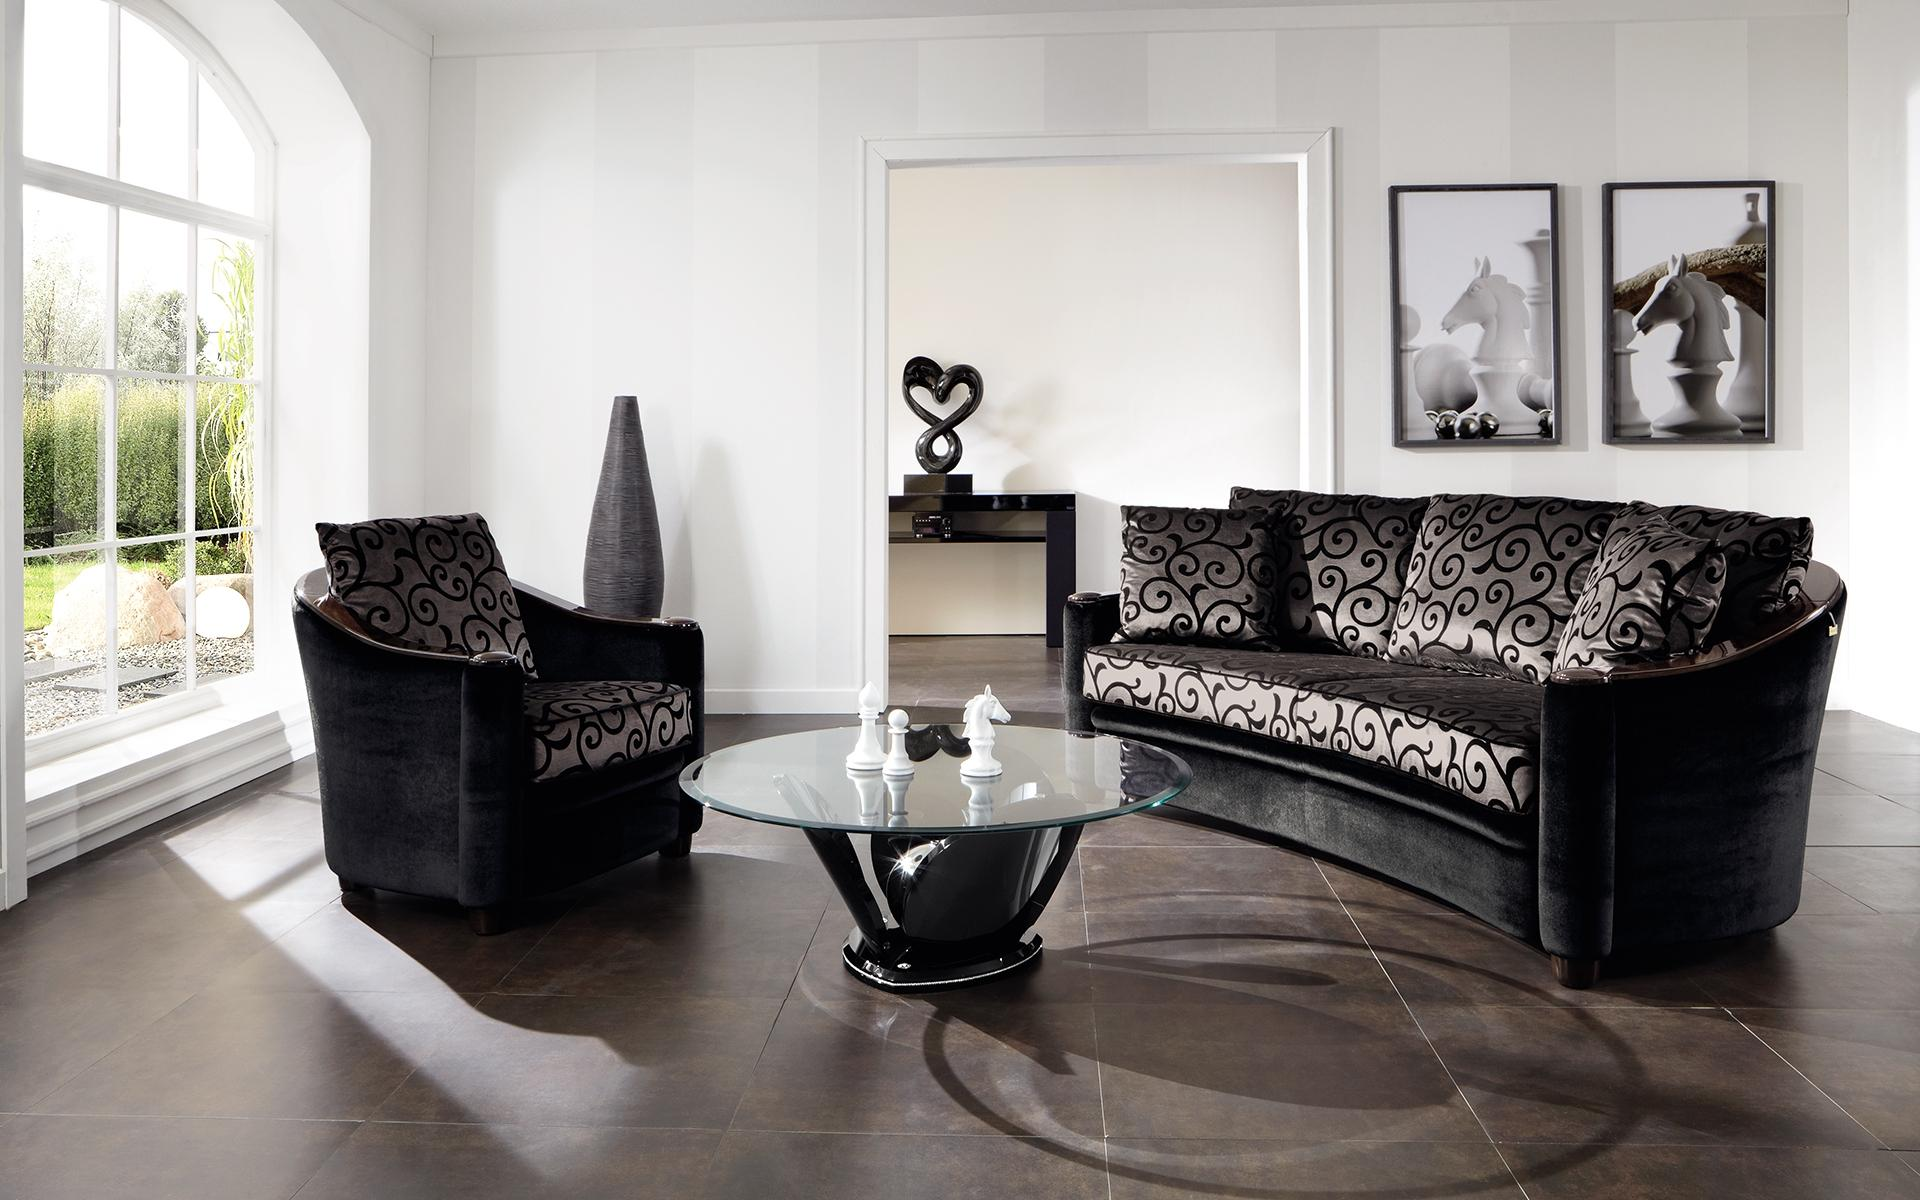 halbrund sofa metropolitan finkeldei polsterm belmanufaktur. Black Bedroom Furniture Sets. Home Design Ideas